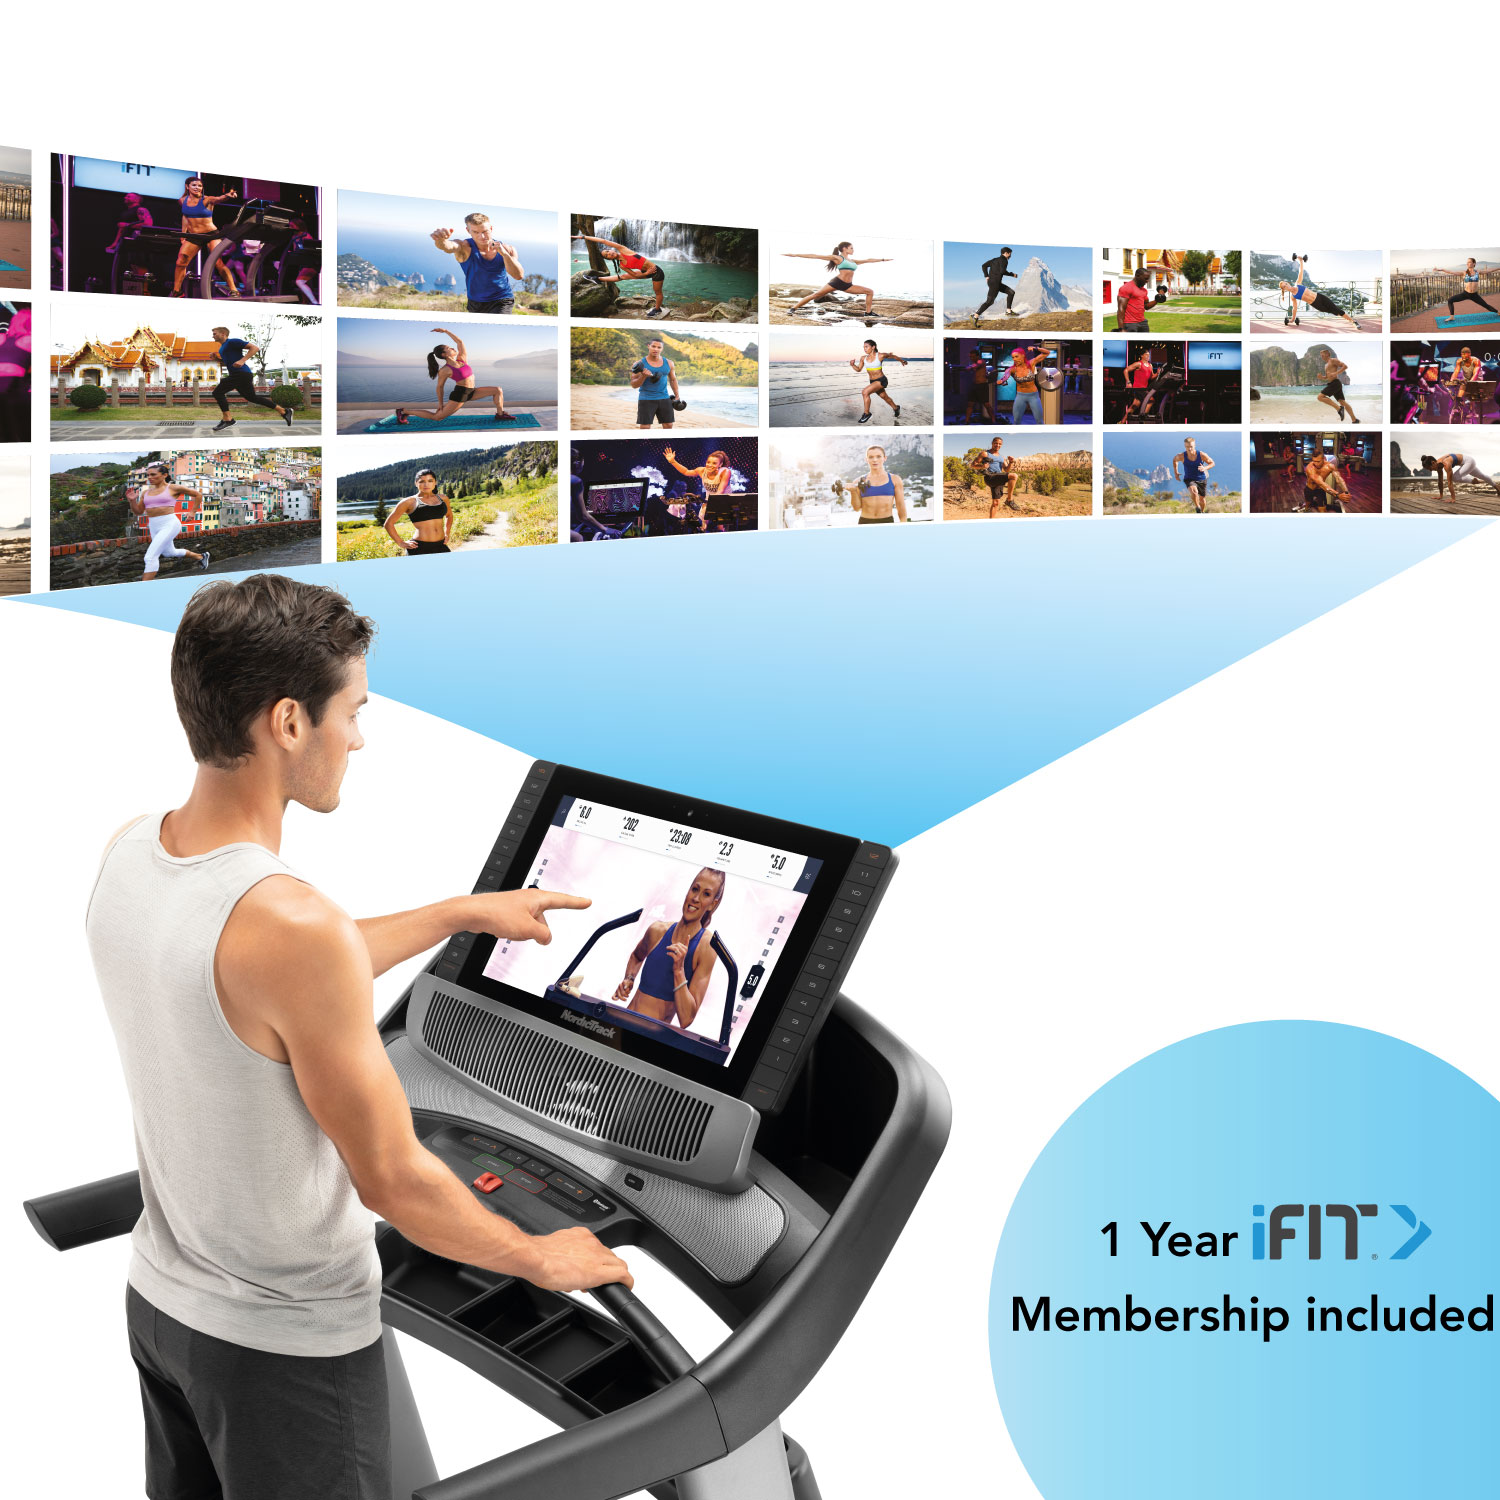 nordictrack.commercial.2950.ifit